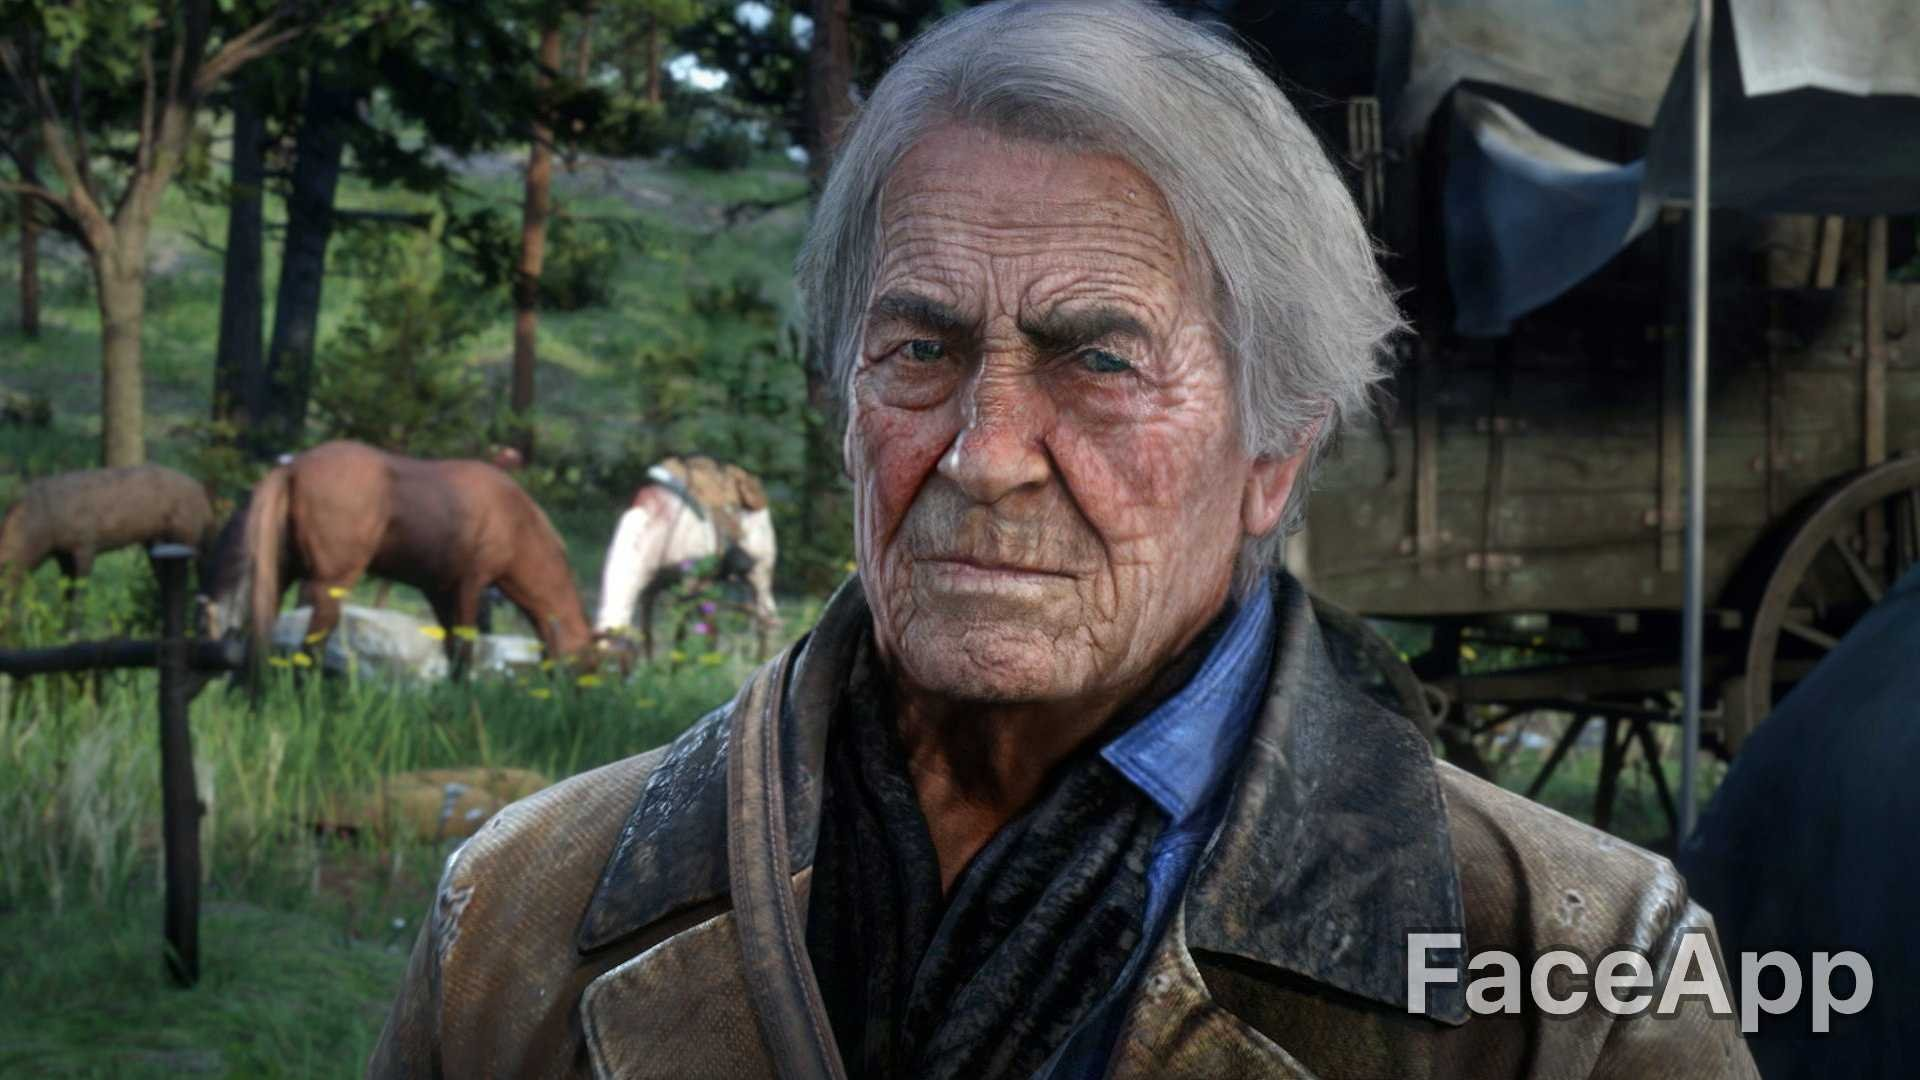 Gallery: We Made PlayStation's Stars Look Old with FaceApp